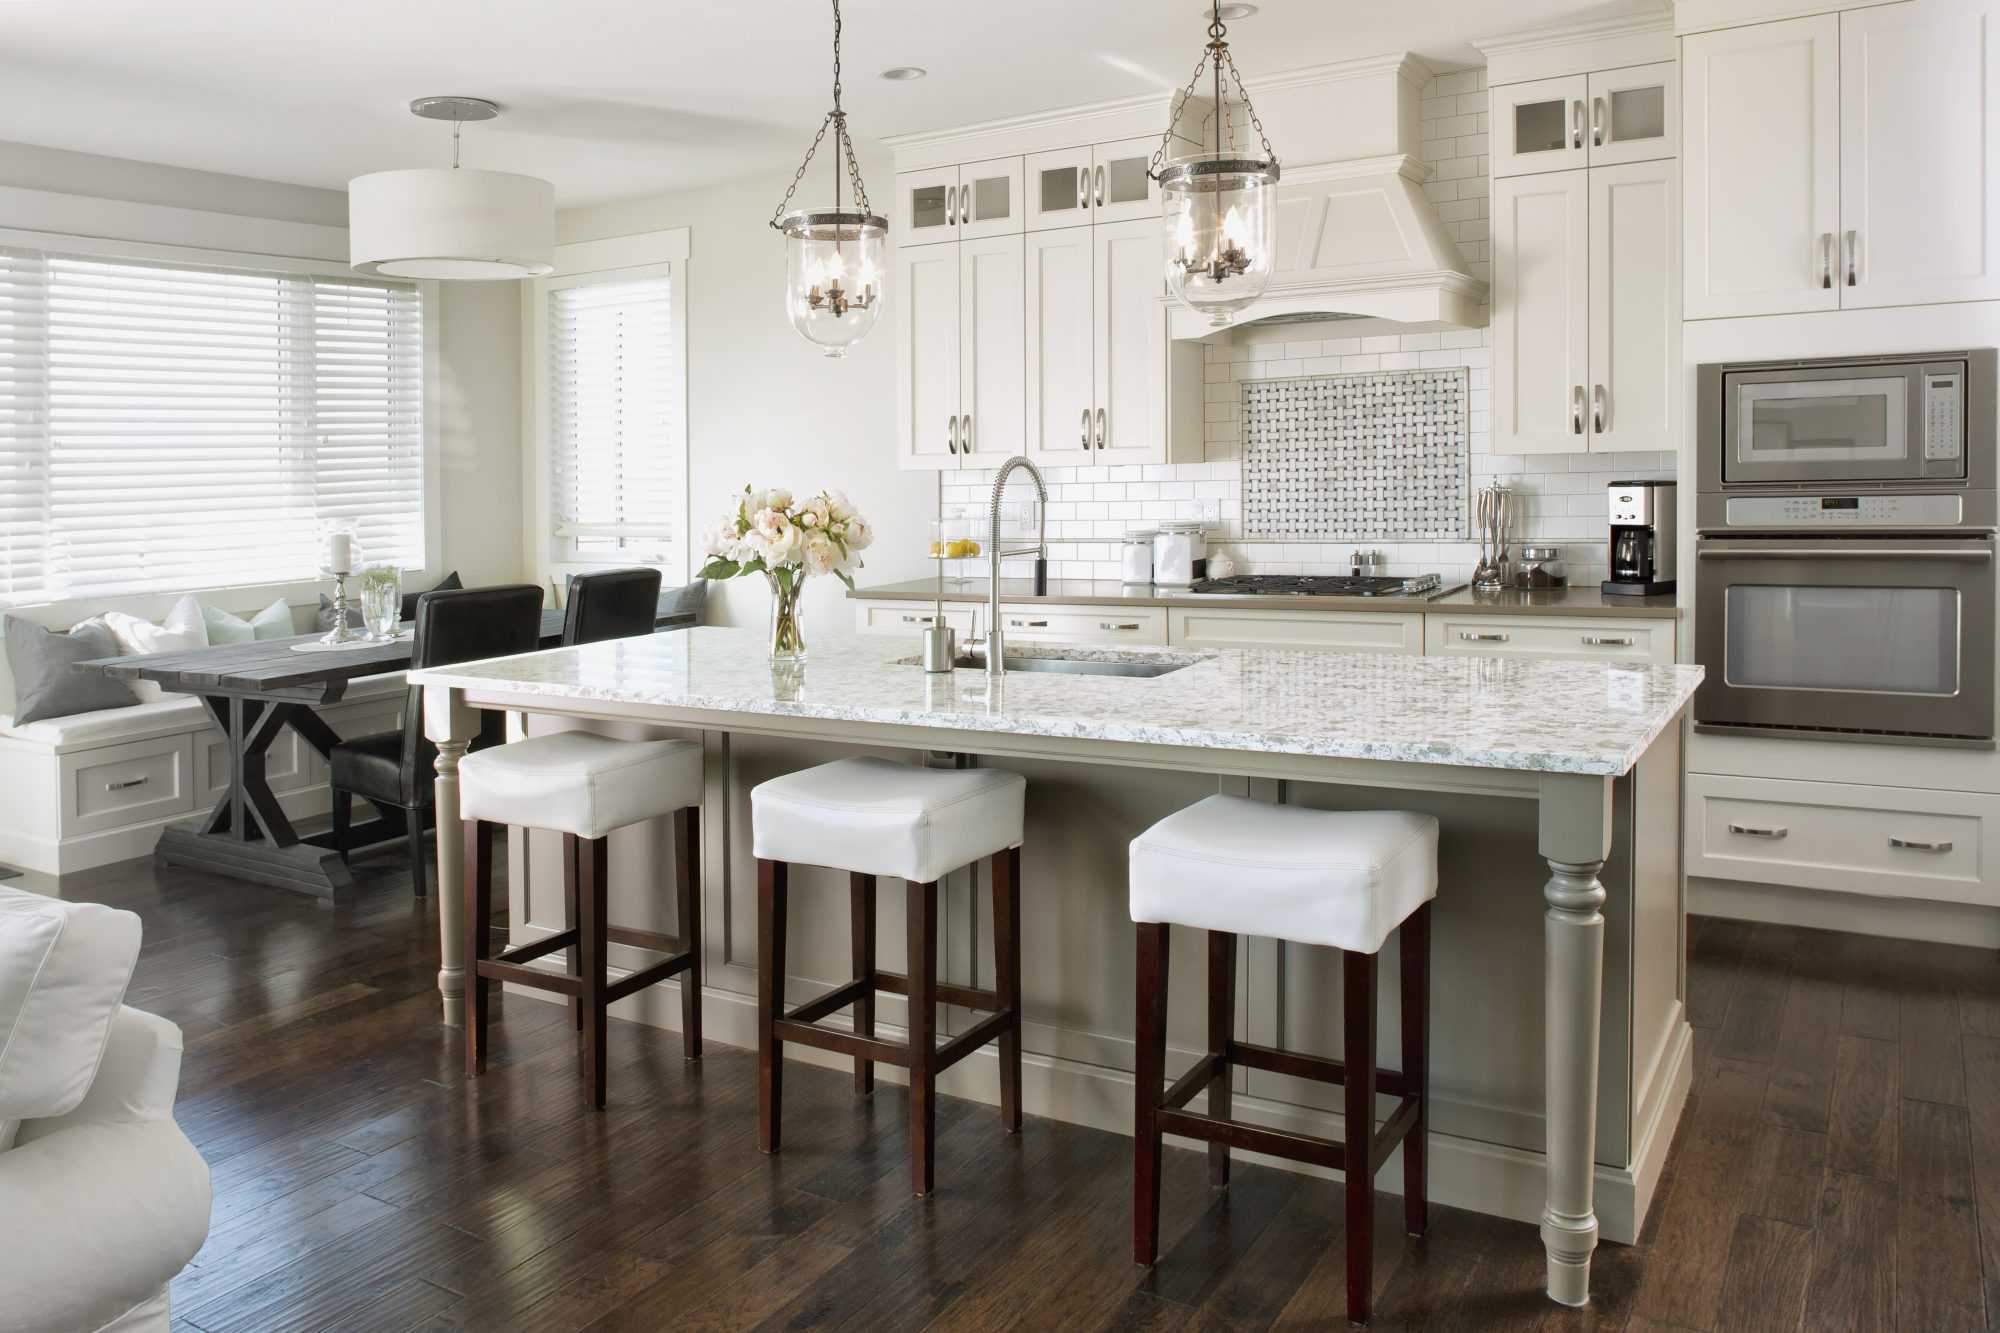 9 Habits of Successful People with Clean, Happy Kitchens